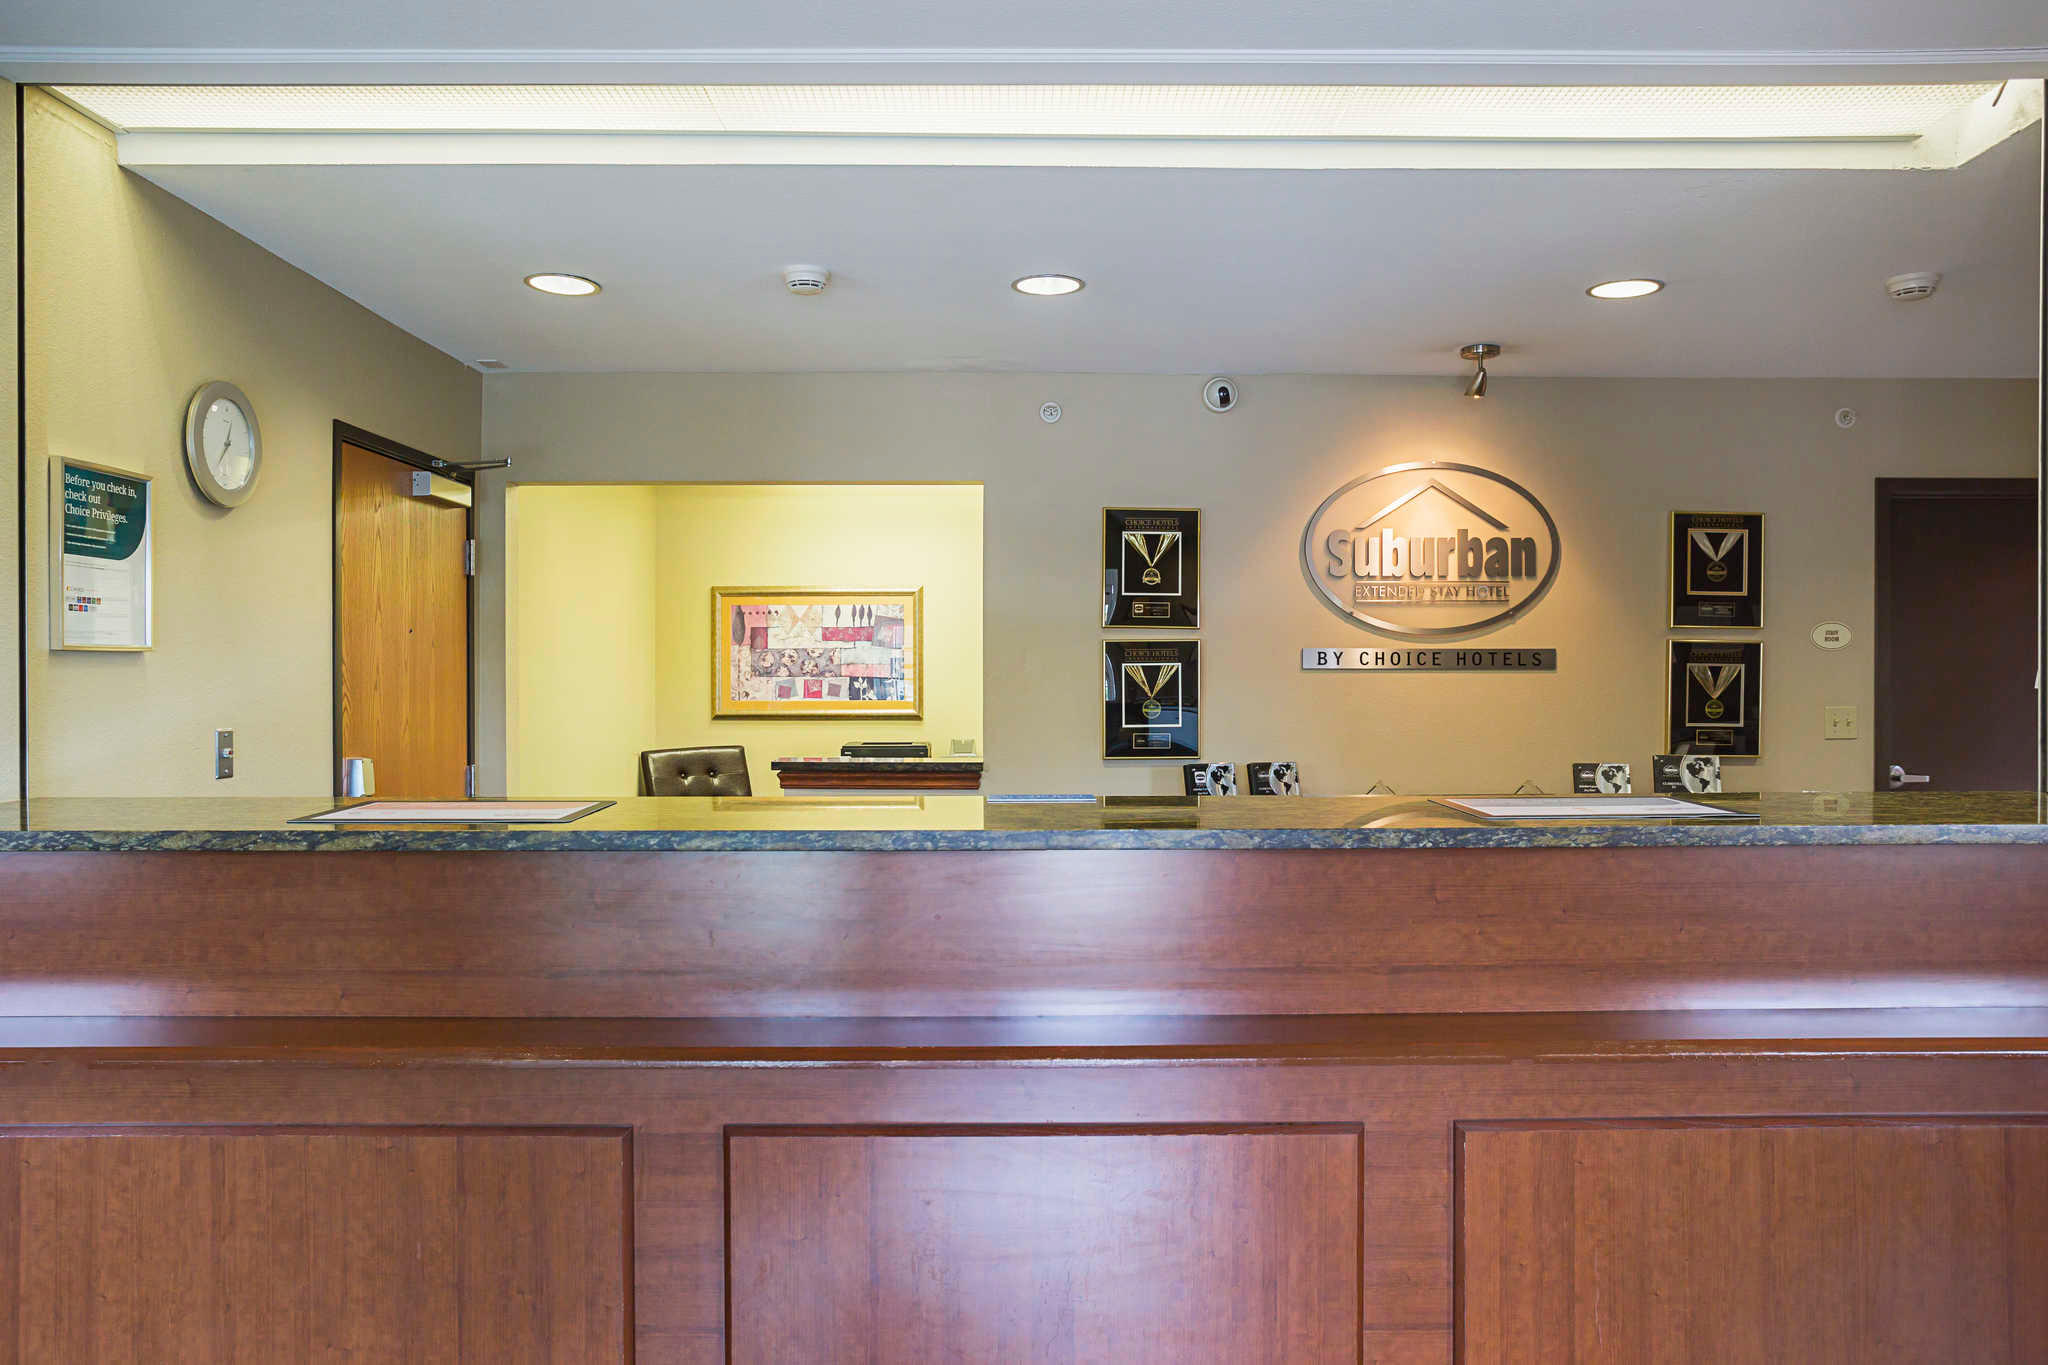 Suburban Extended Stay Hotel image 5